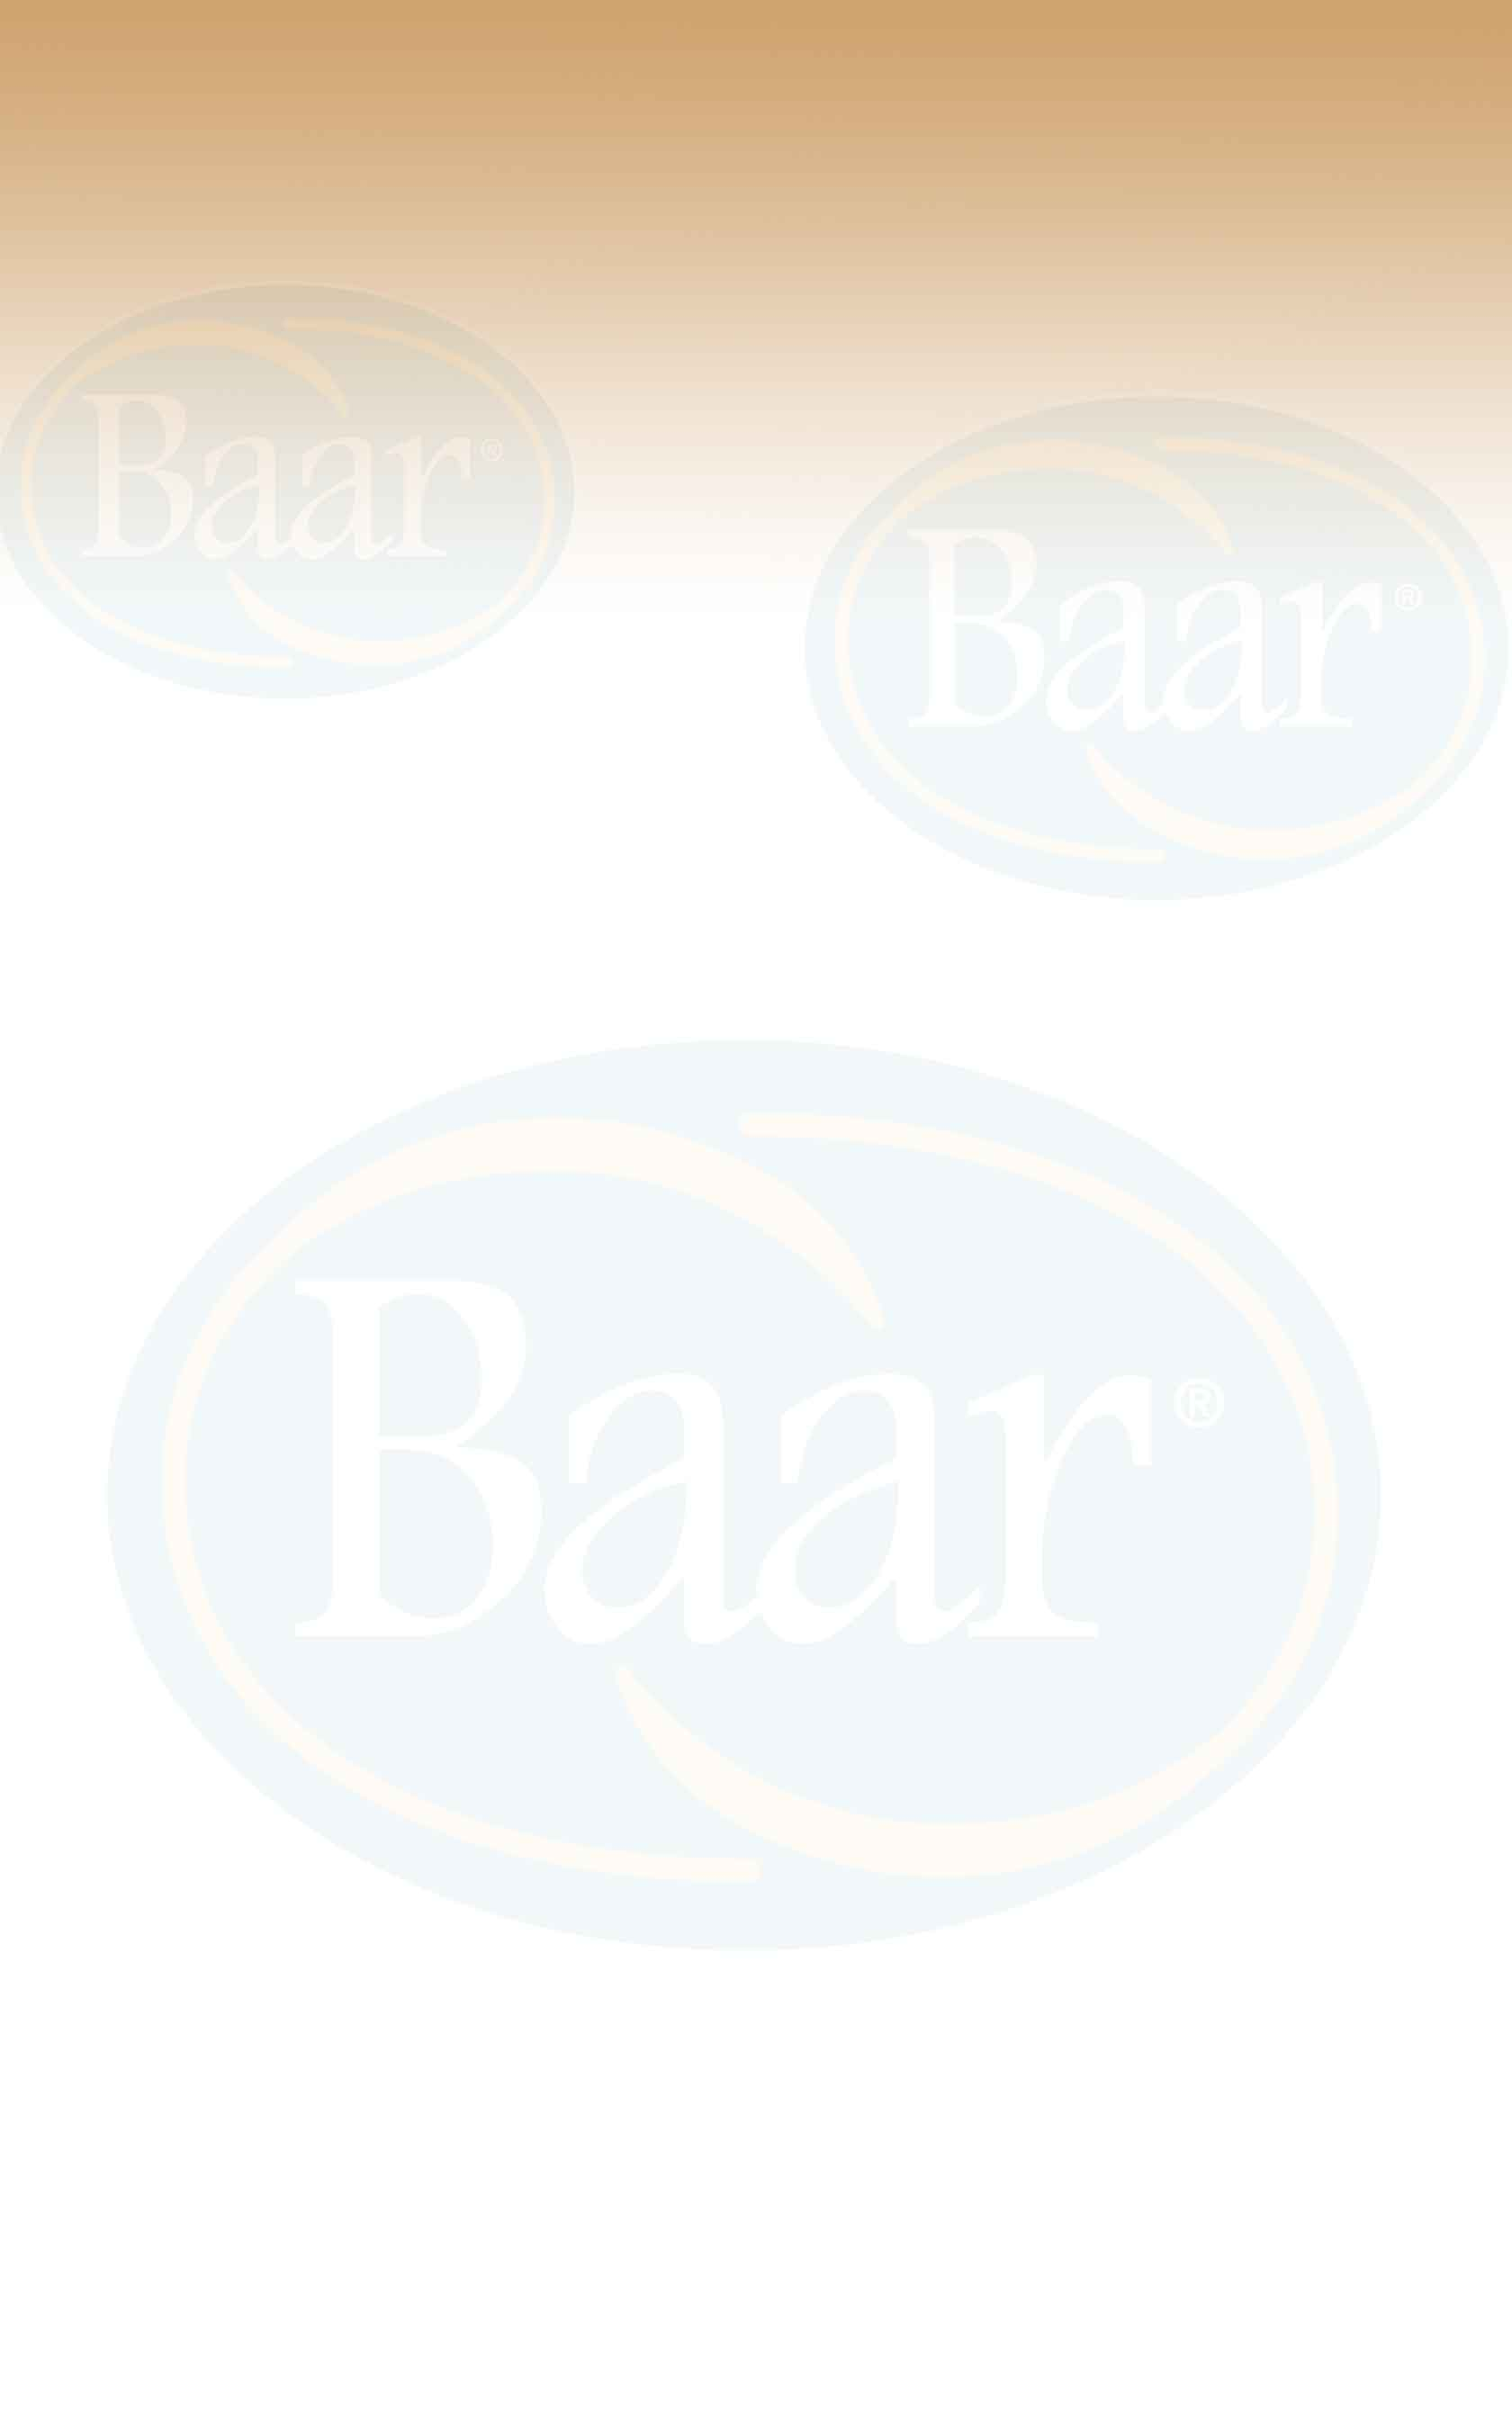 Background image of Baar logo for saltnsoda.com